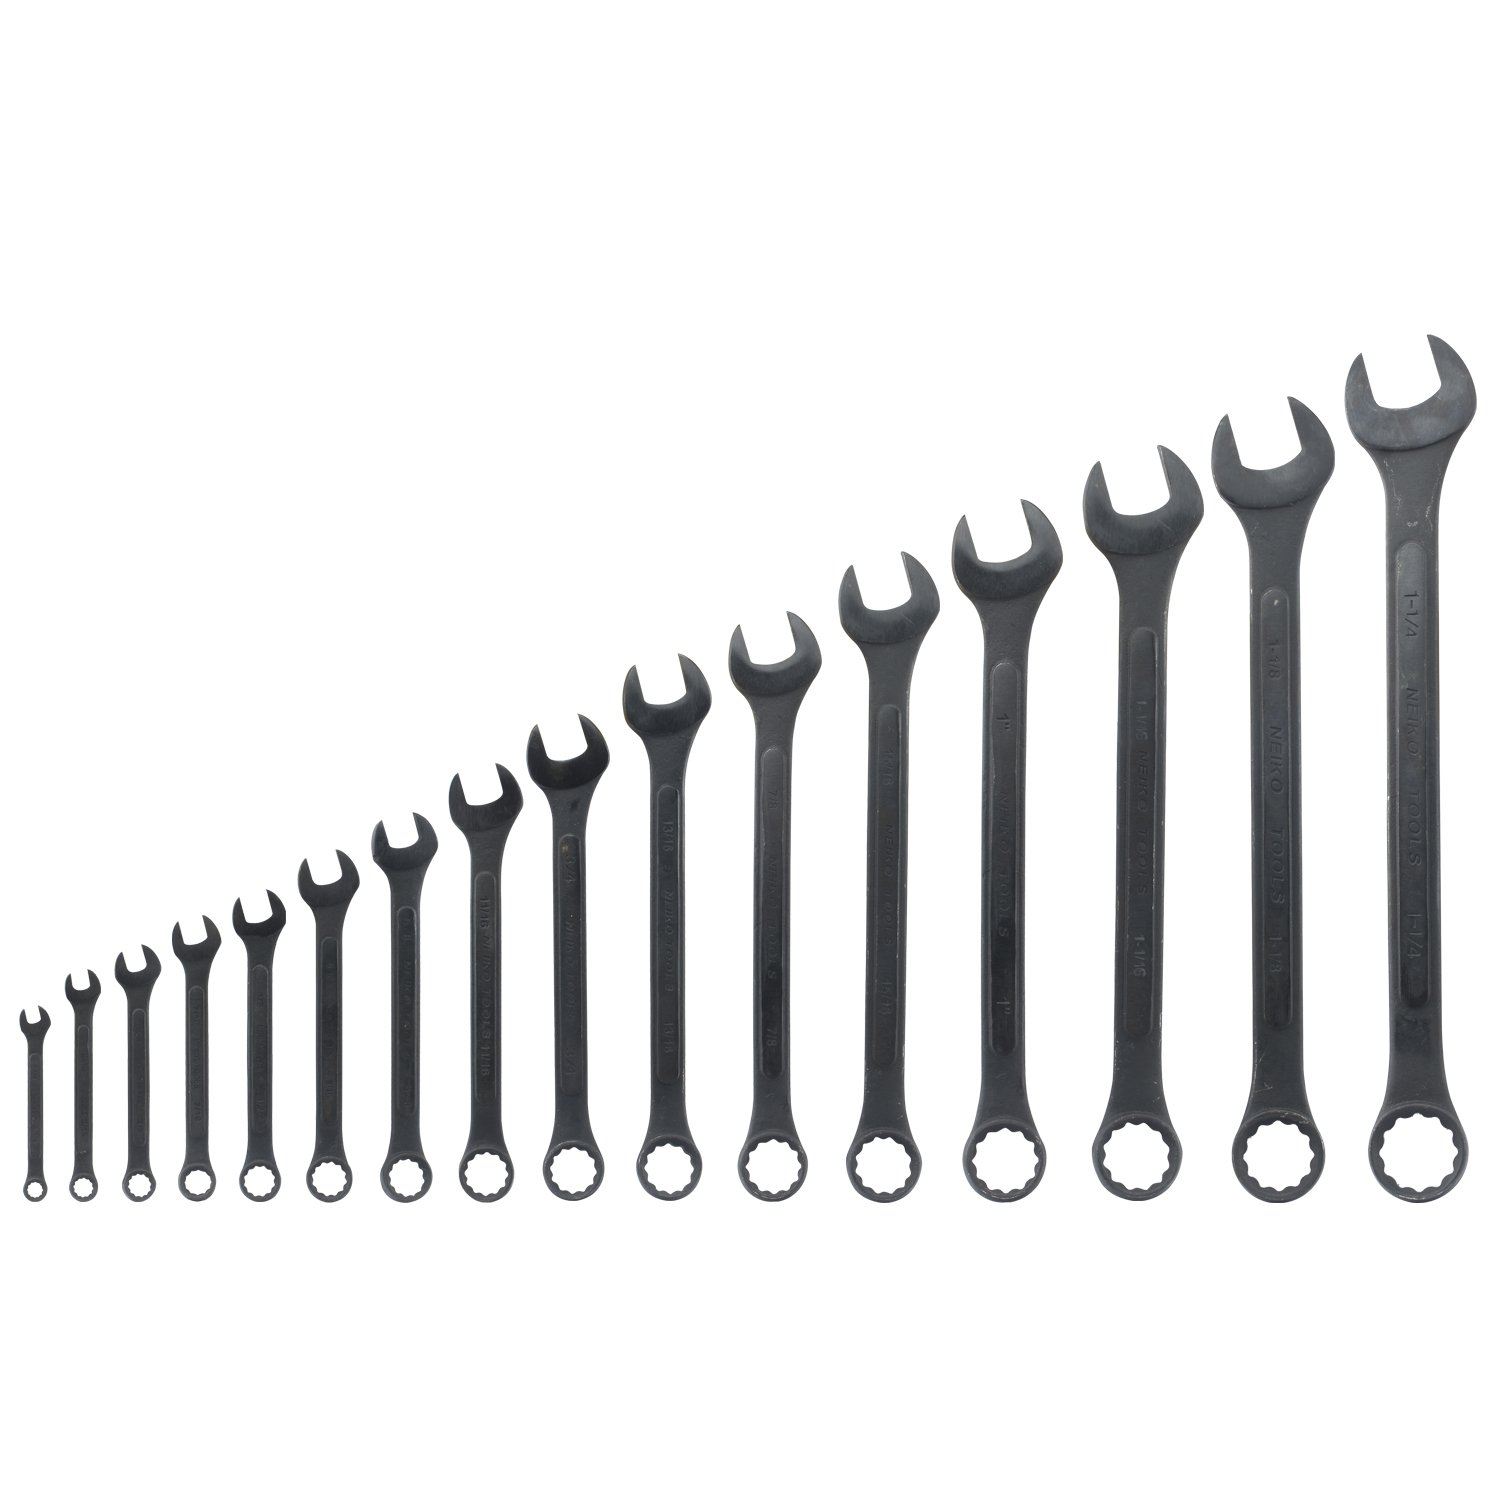 Neiko 03574A SAE Raised Panel Combination Wrench Set, 16 Piece | 12 Point Box End | 6-32 mm